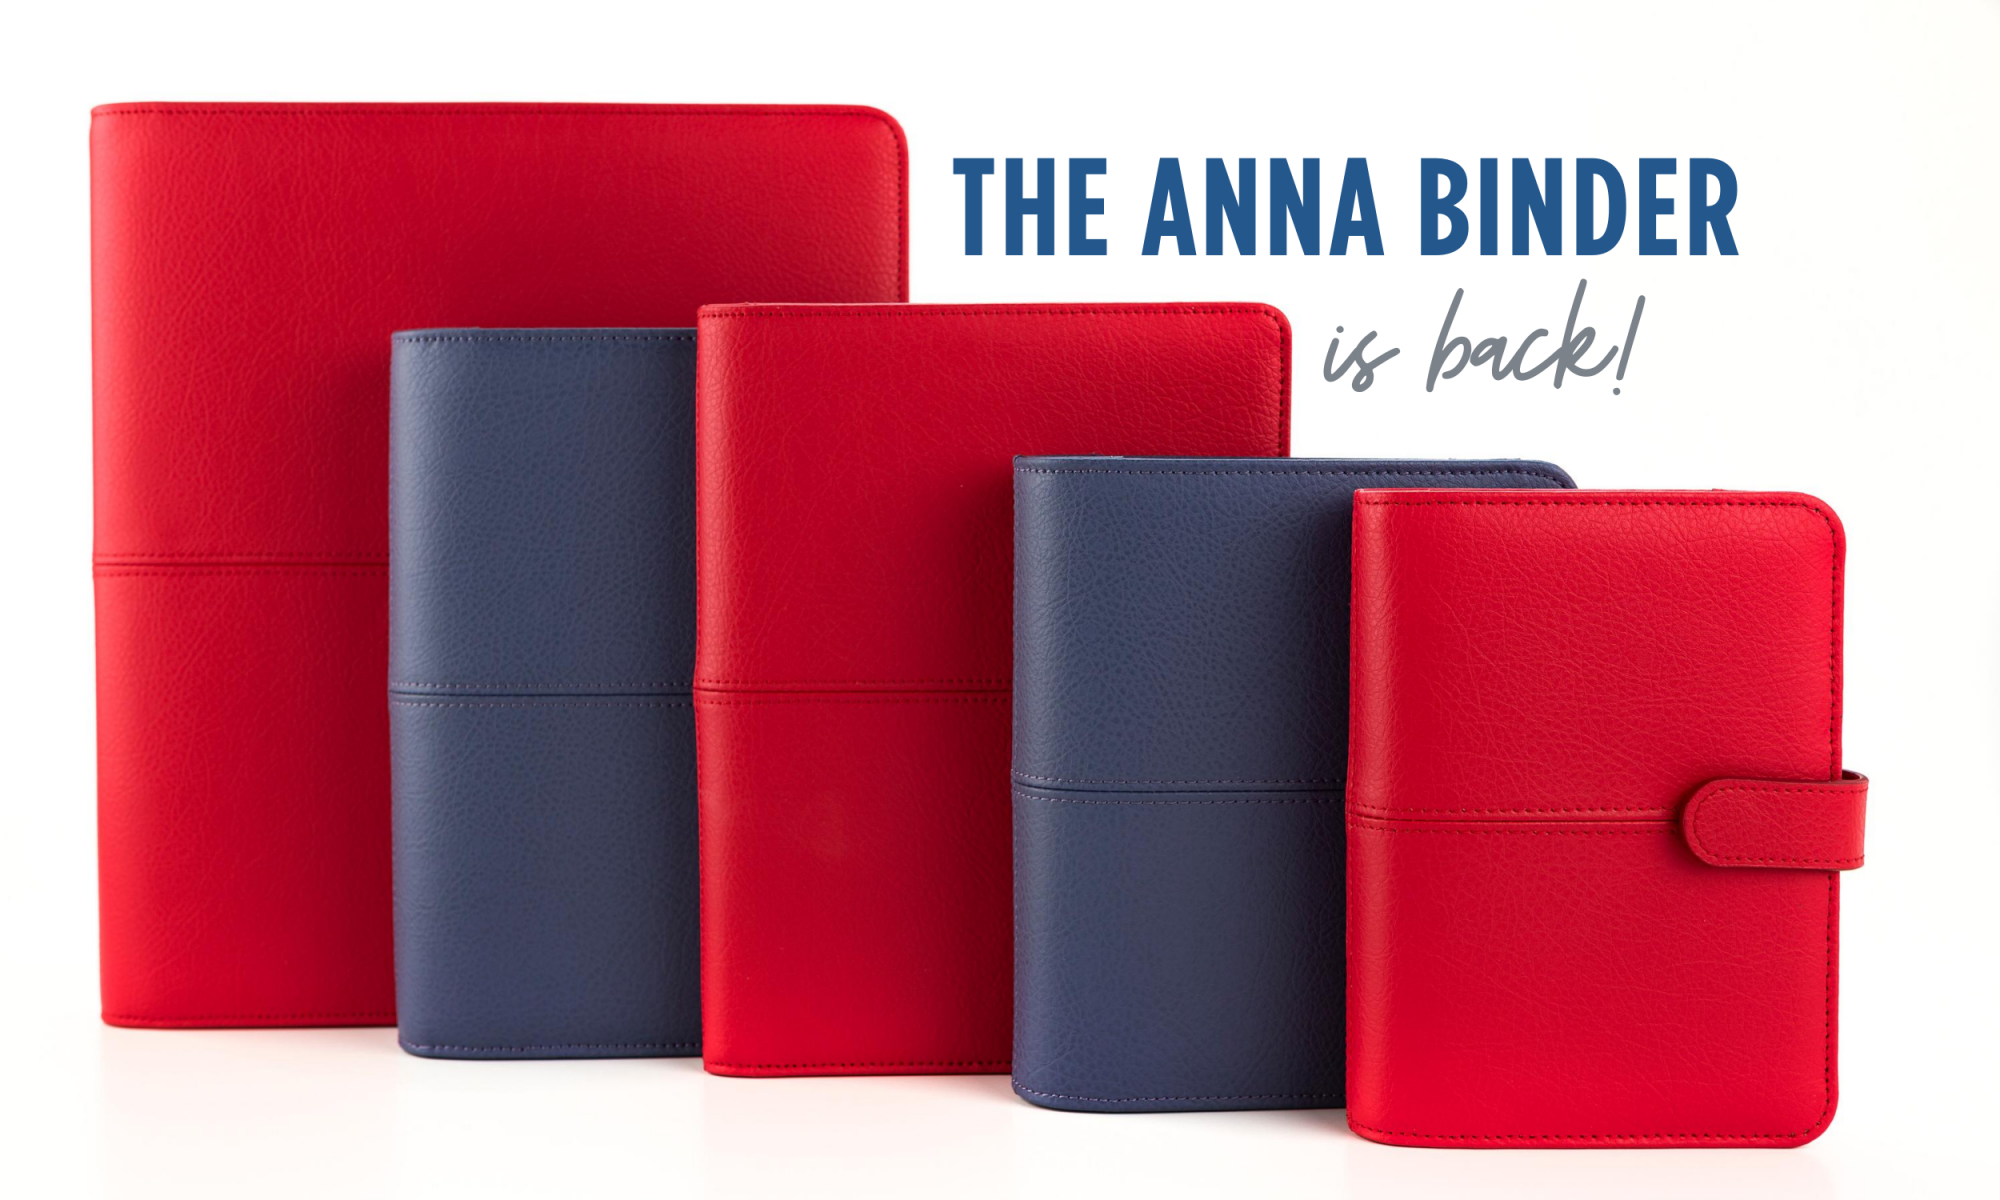 The Anna Binder is back